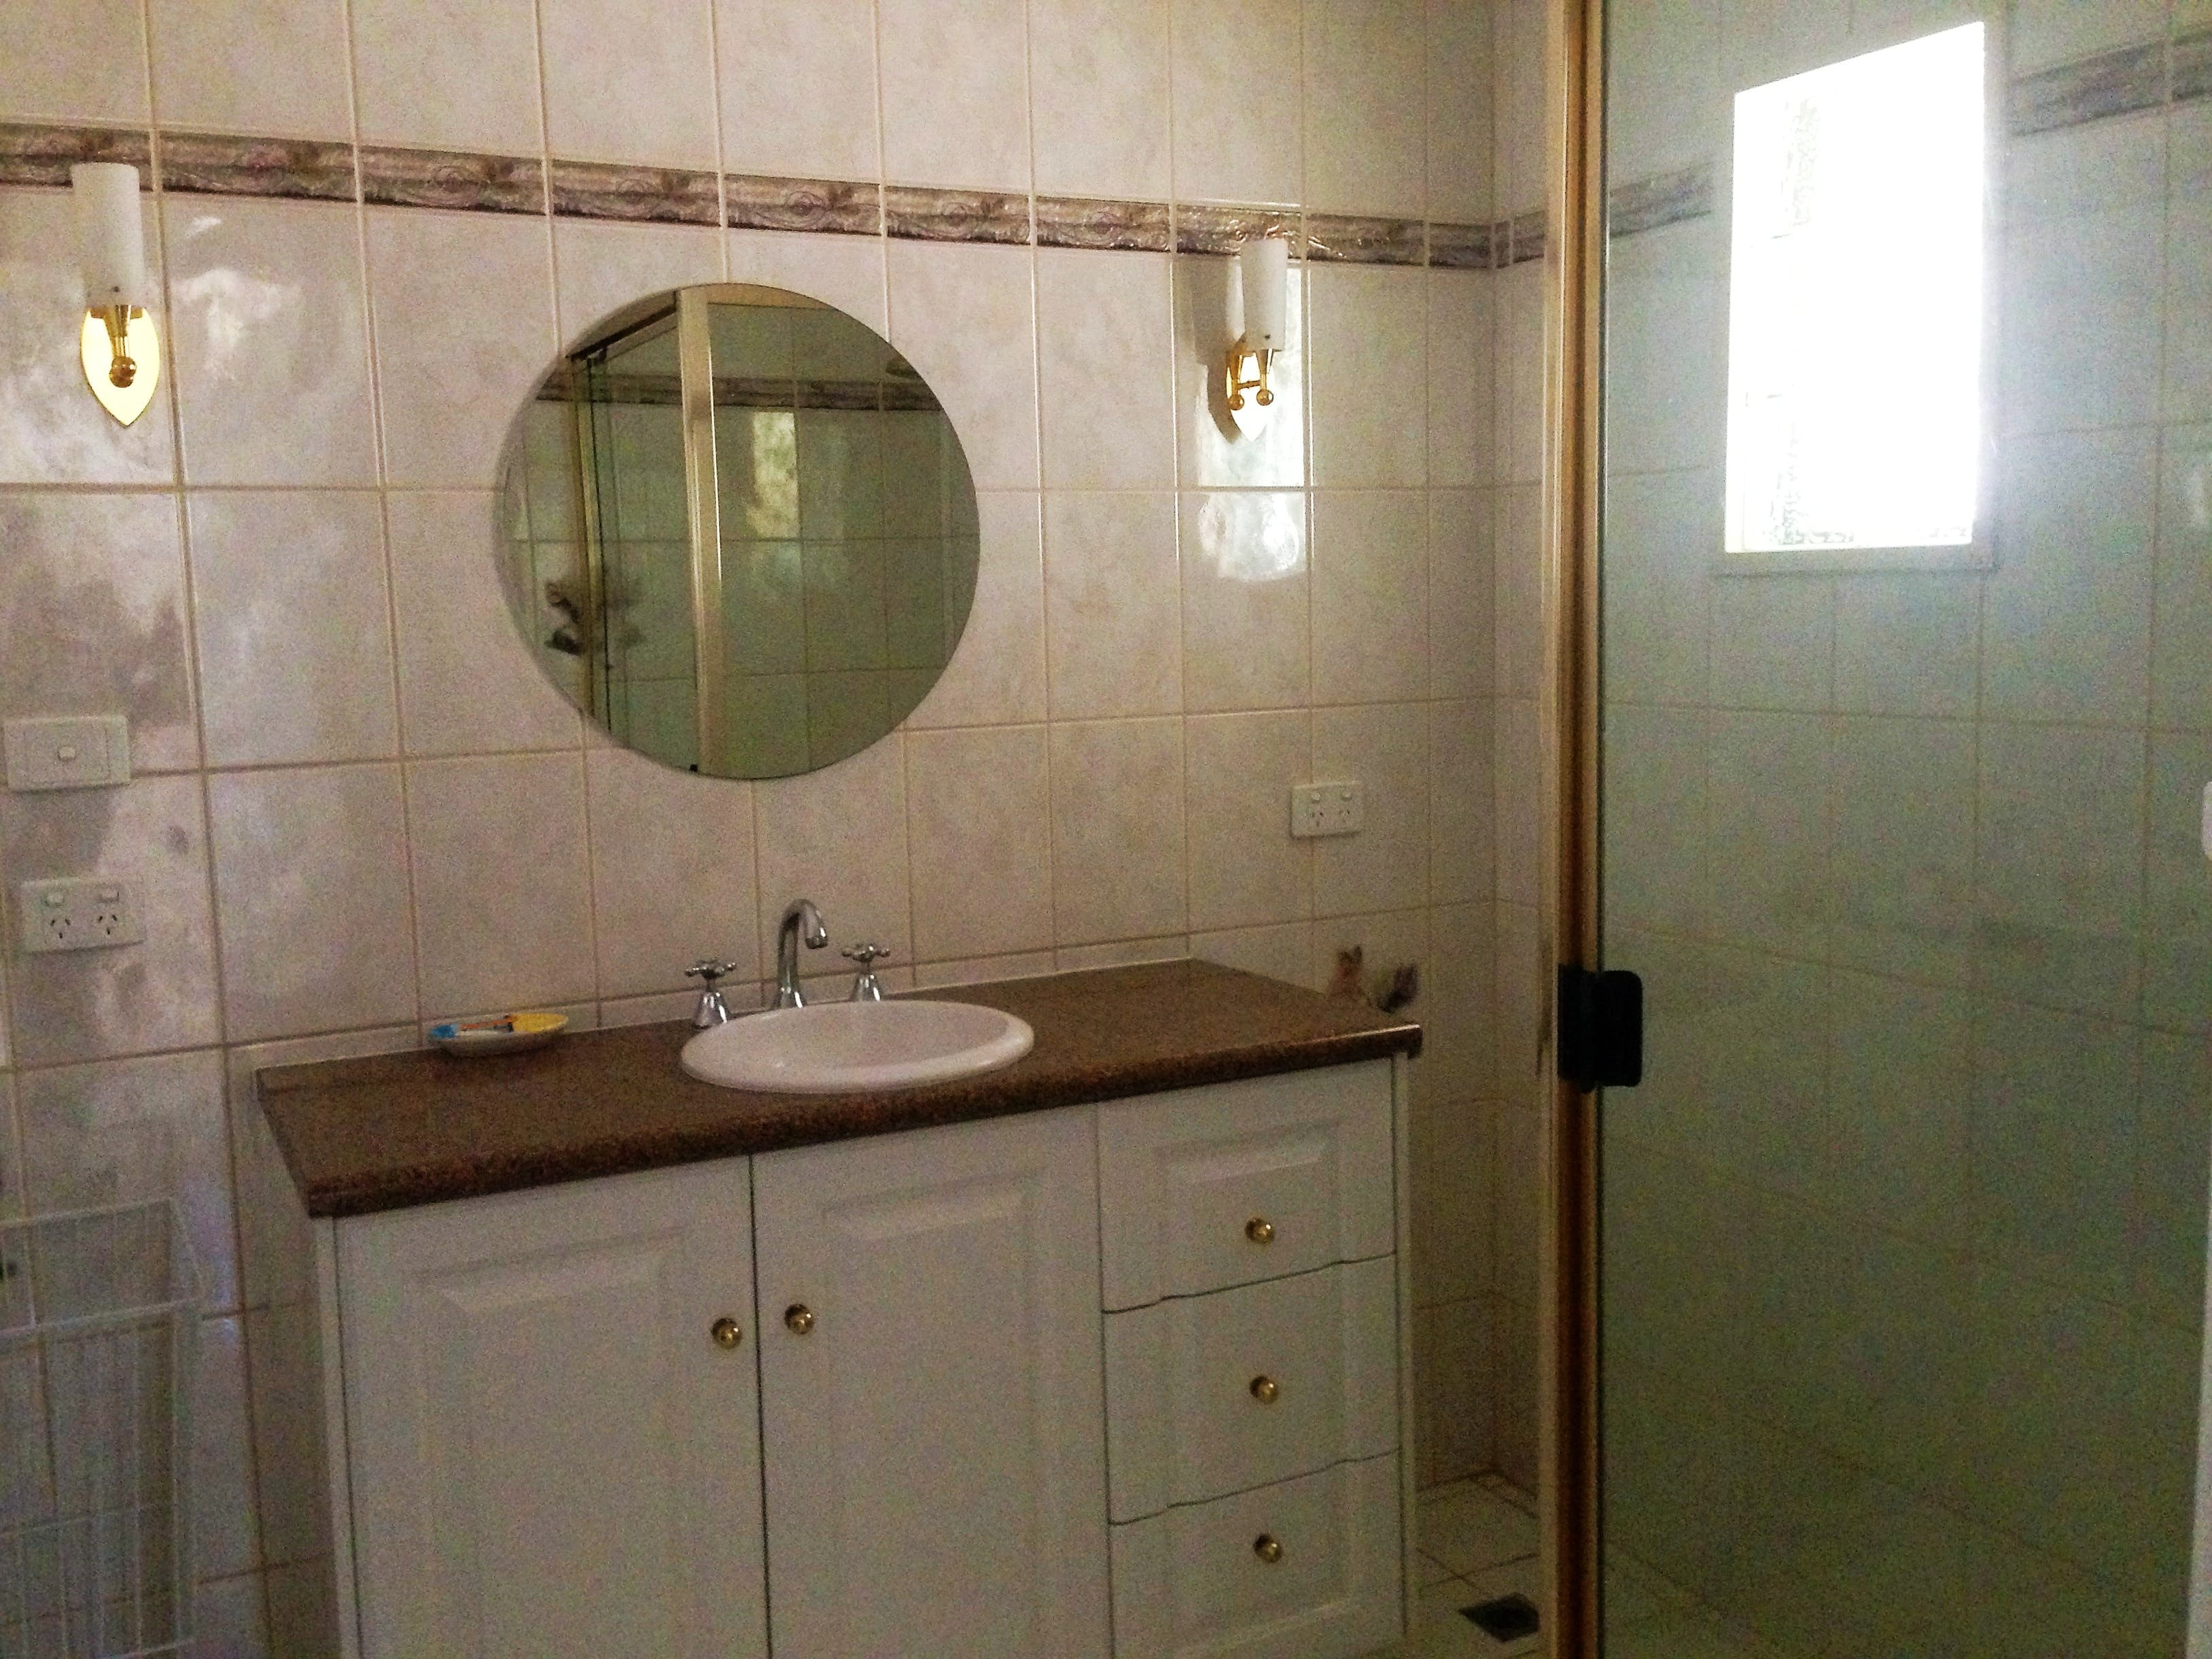 HOUSE bathroom (downstairs)